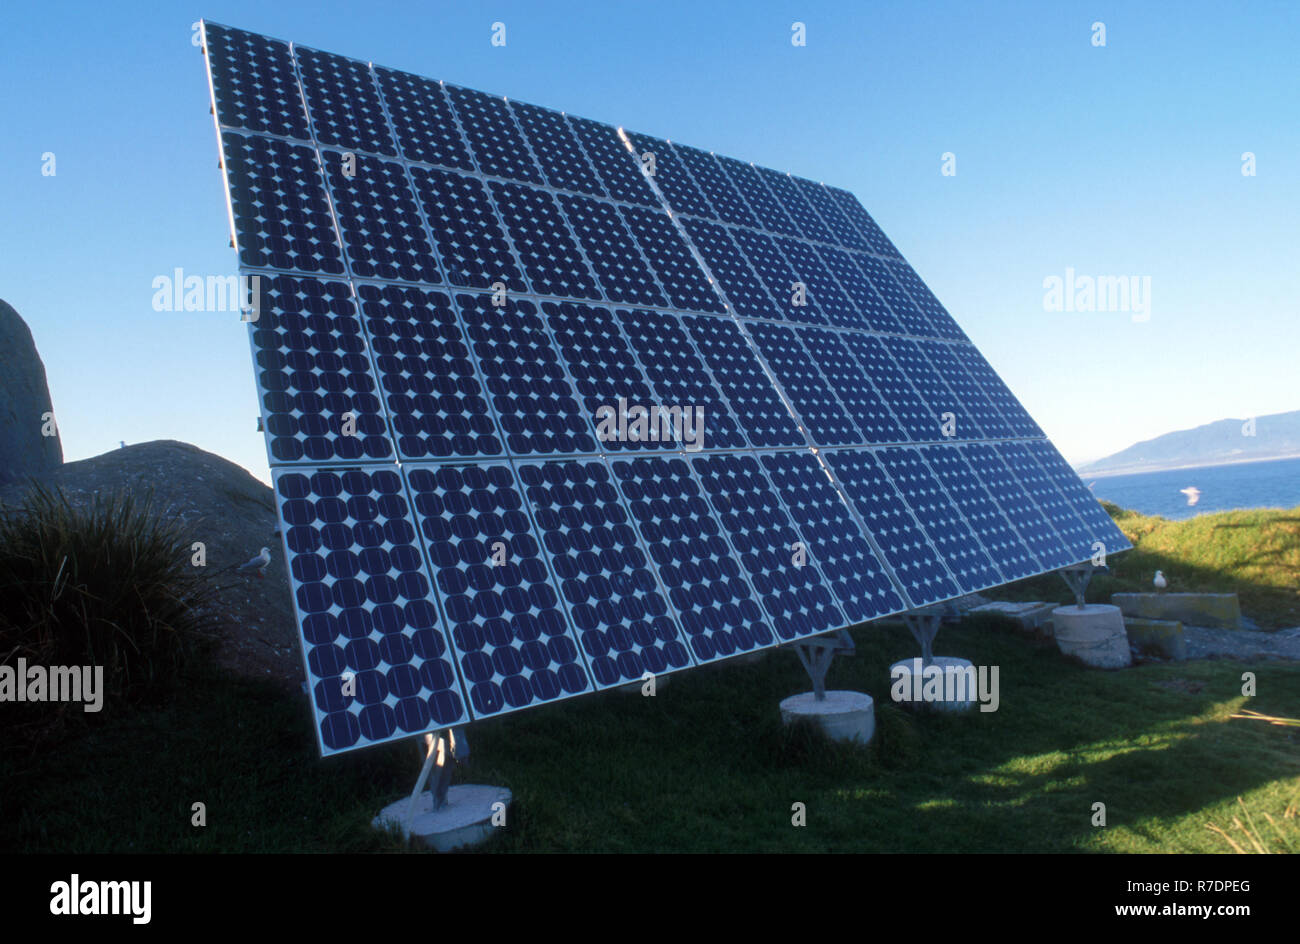 FLAT BANK OF SOLAR PANELS ON MONTAGUE ISLAND OFF THE COAST OF NAROOMA, NEW SOUTH WALES, AUSTRALIA - Stock Image